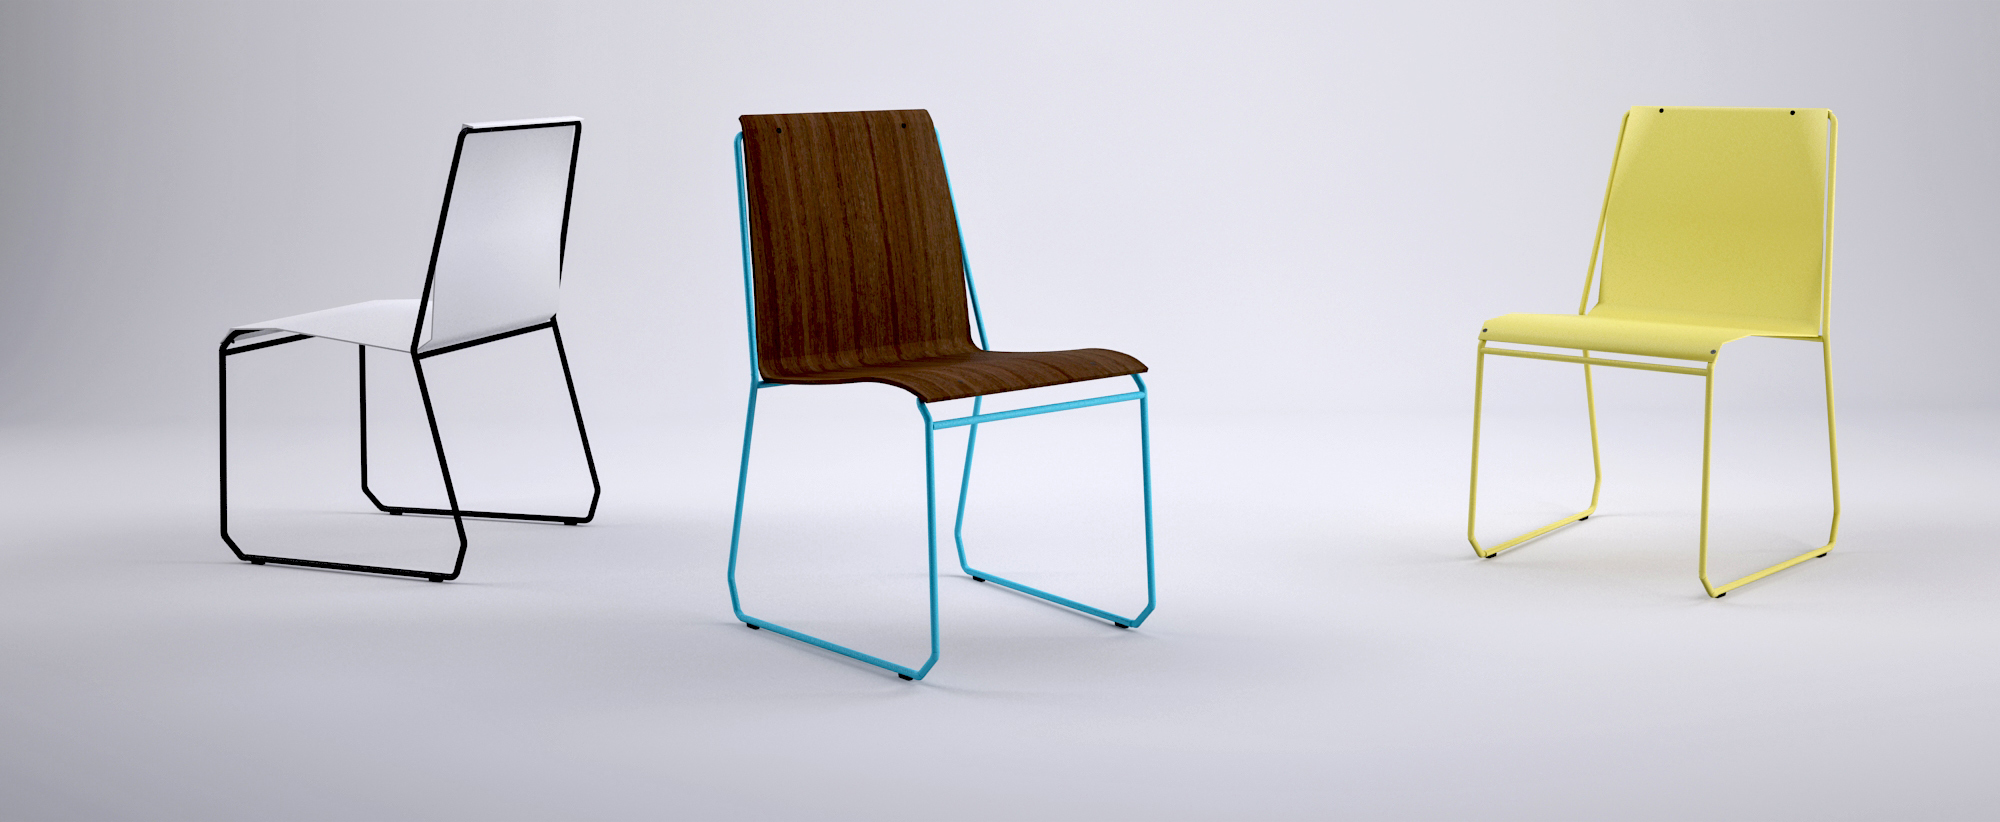 lUCCA CHAIR - Seating/ Concept design